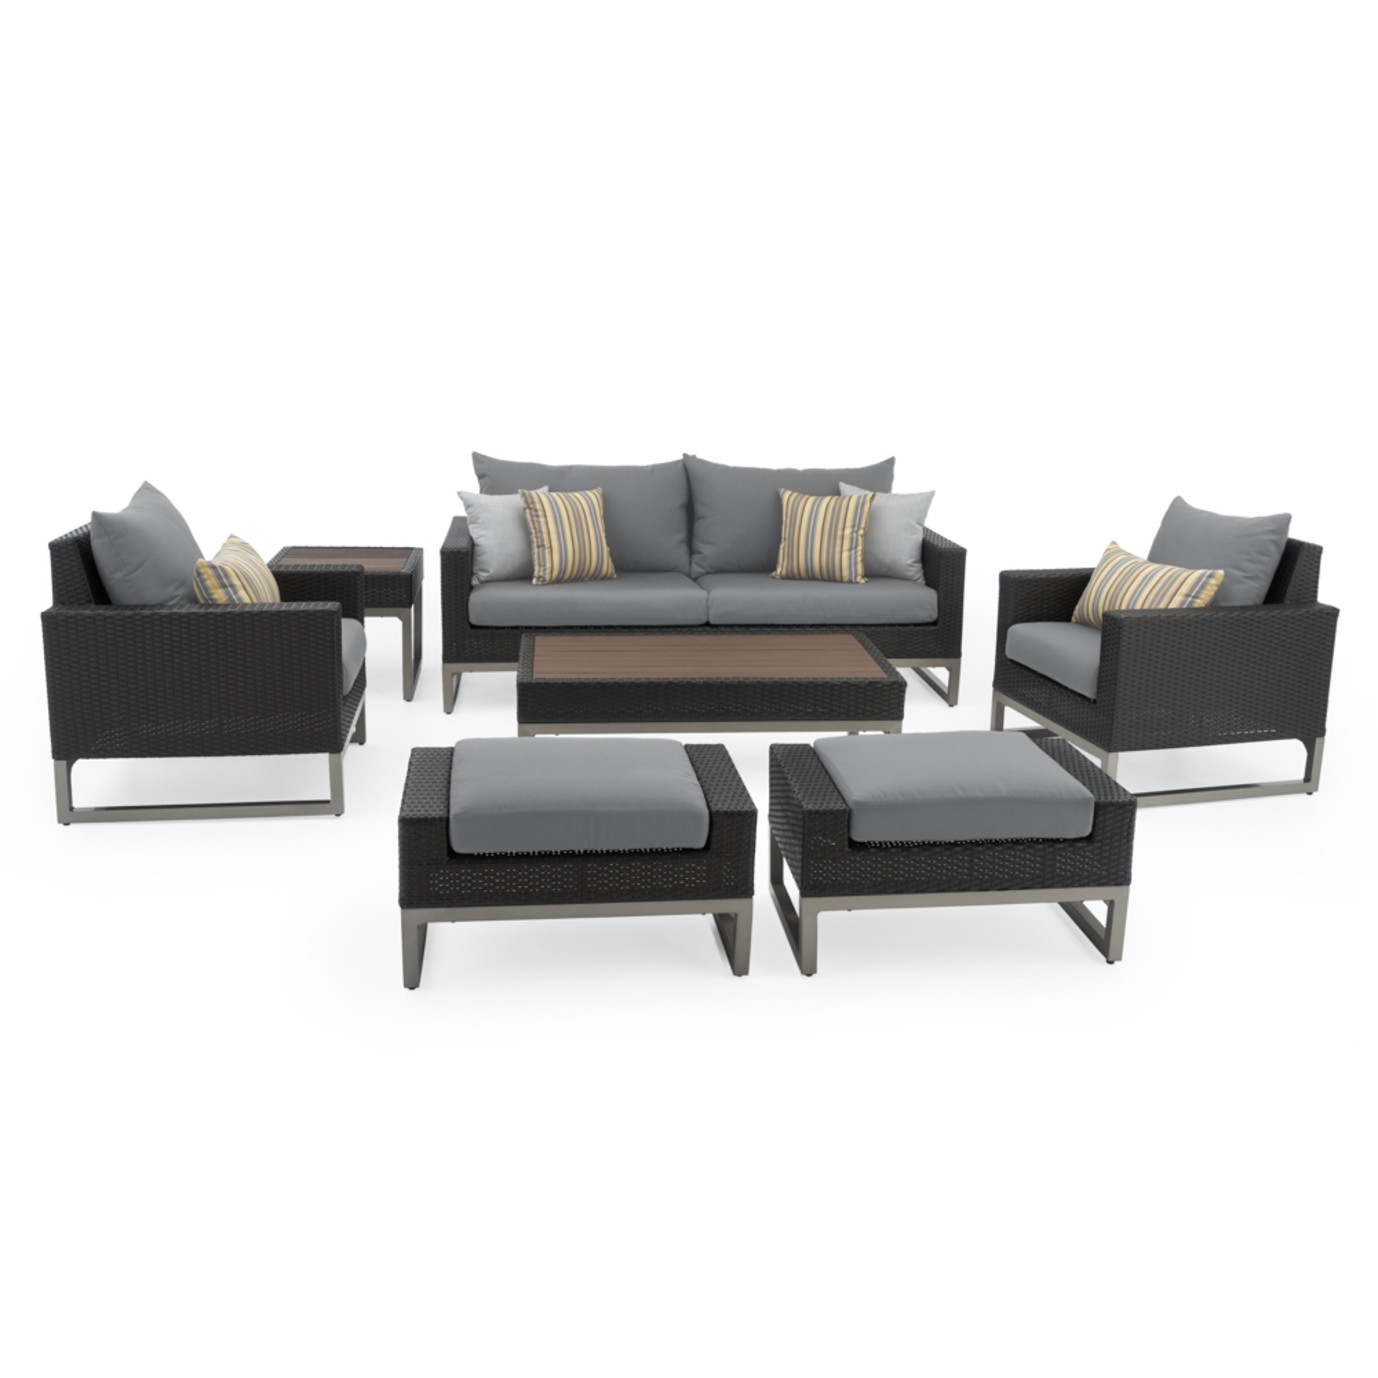 Milo™ Espresso 7 Piece Deep Seating Set - Charcoal Gray